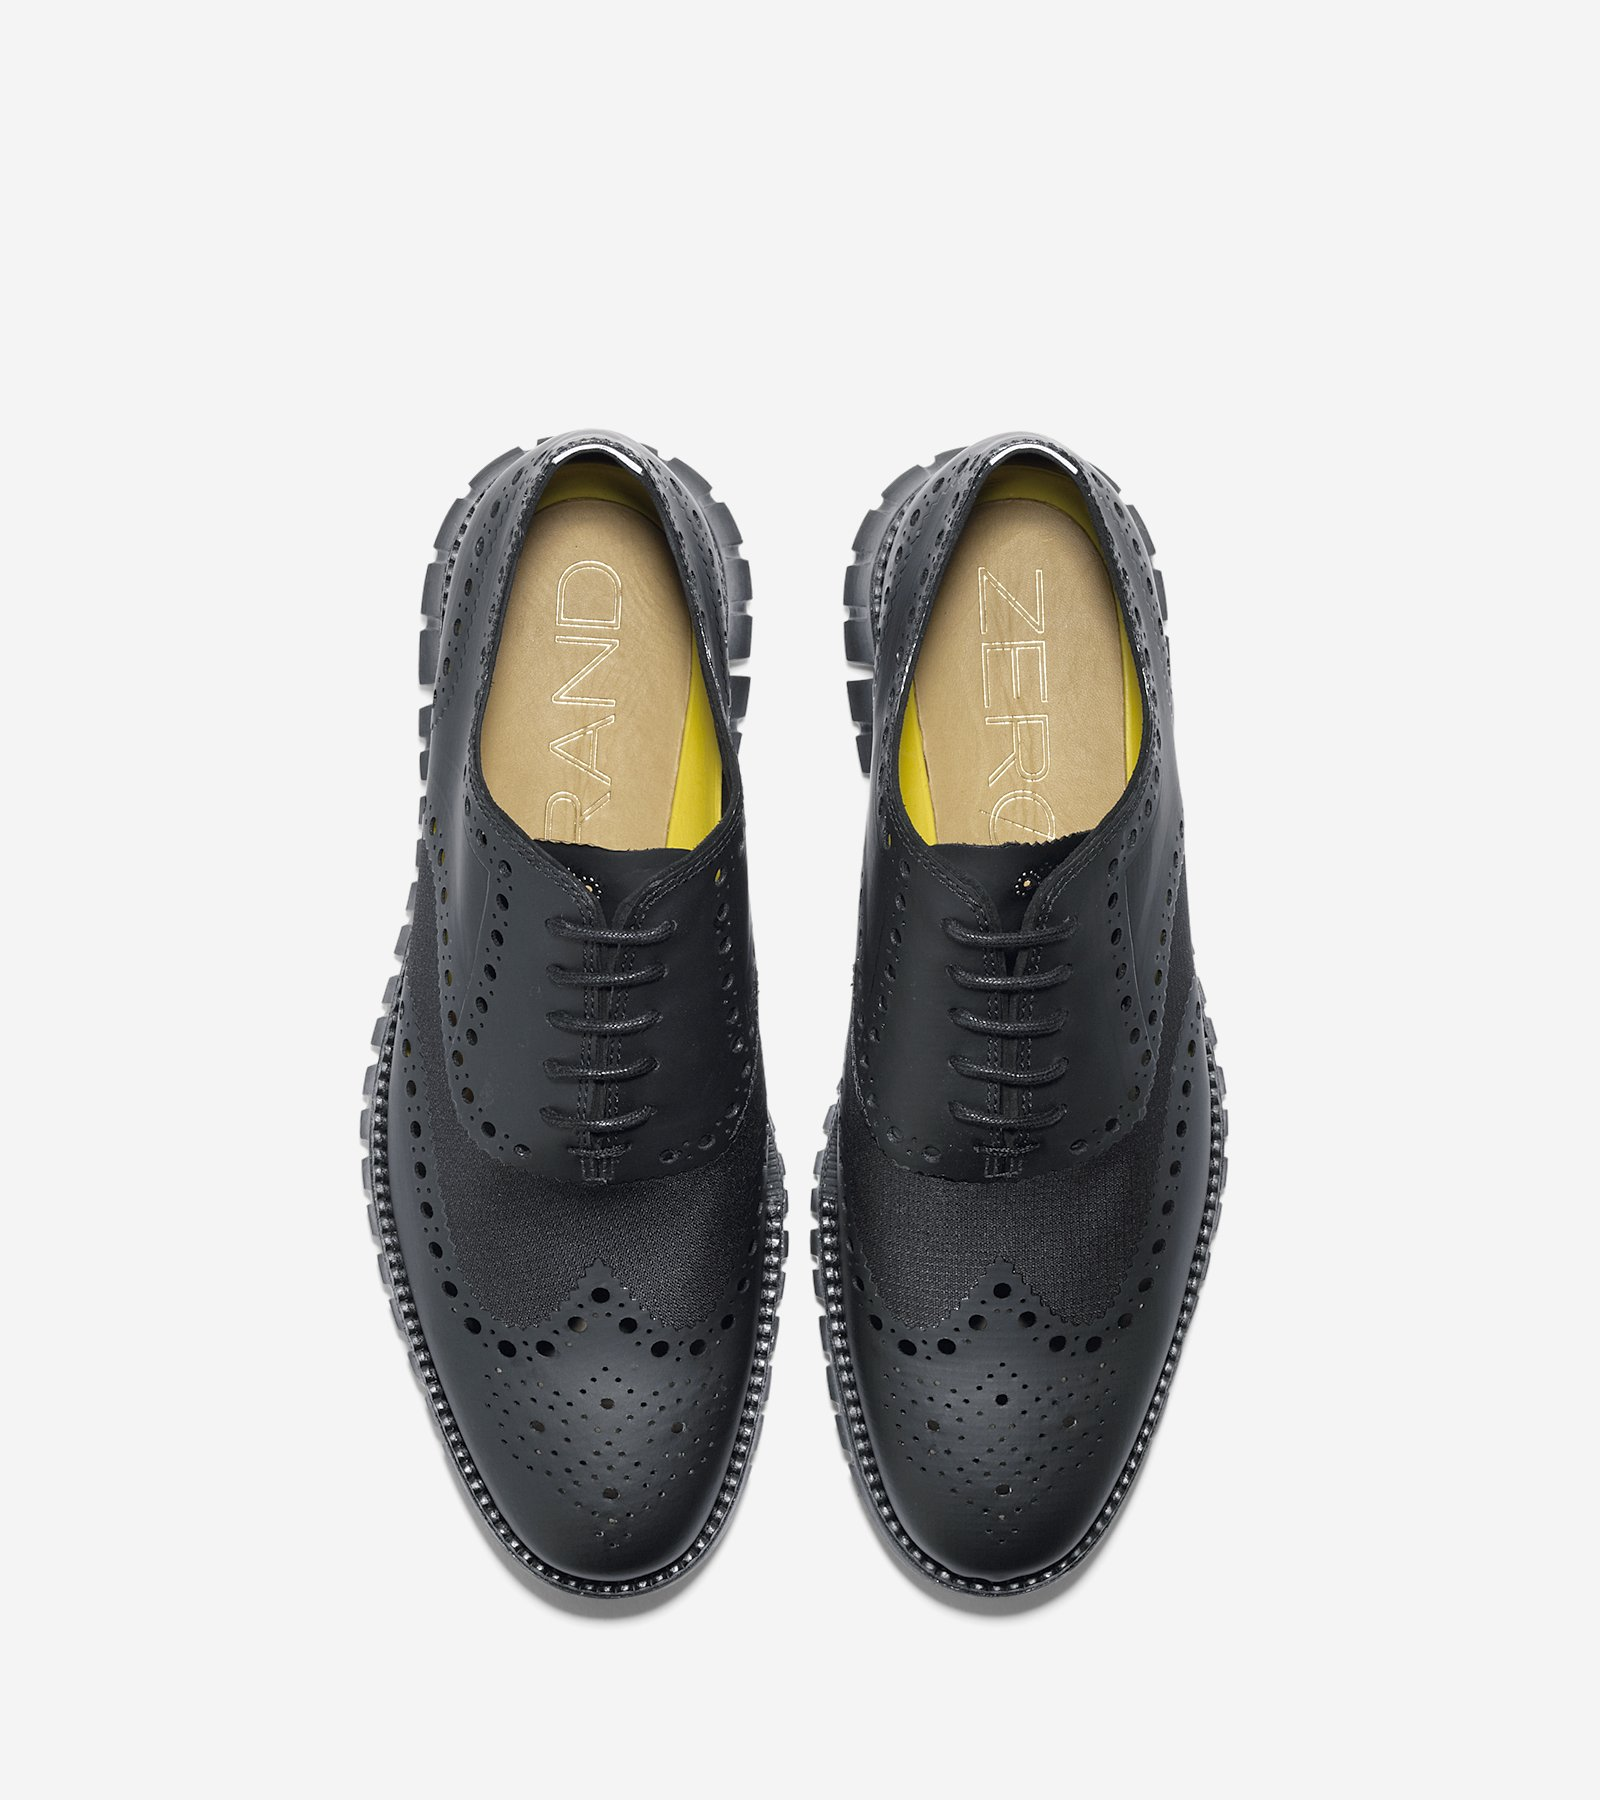 Cole Haan_ZeroGrand Oxford No Stitch_Black 3